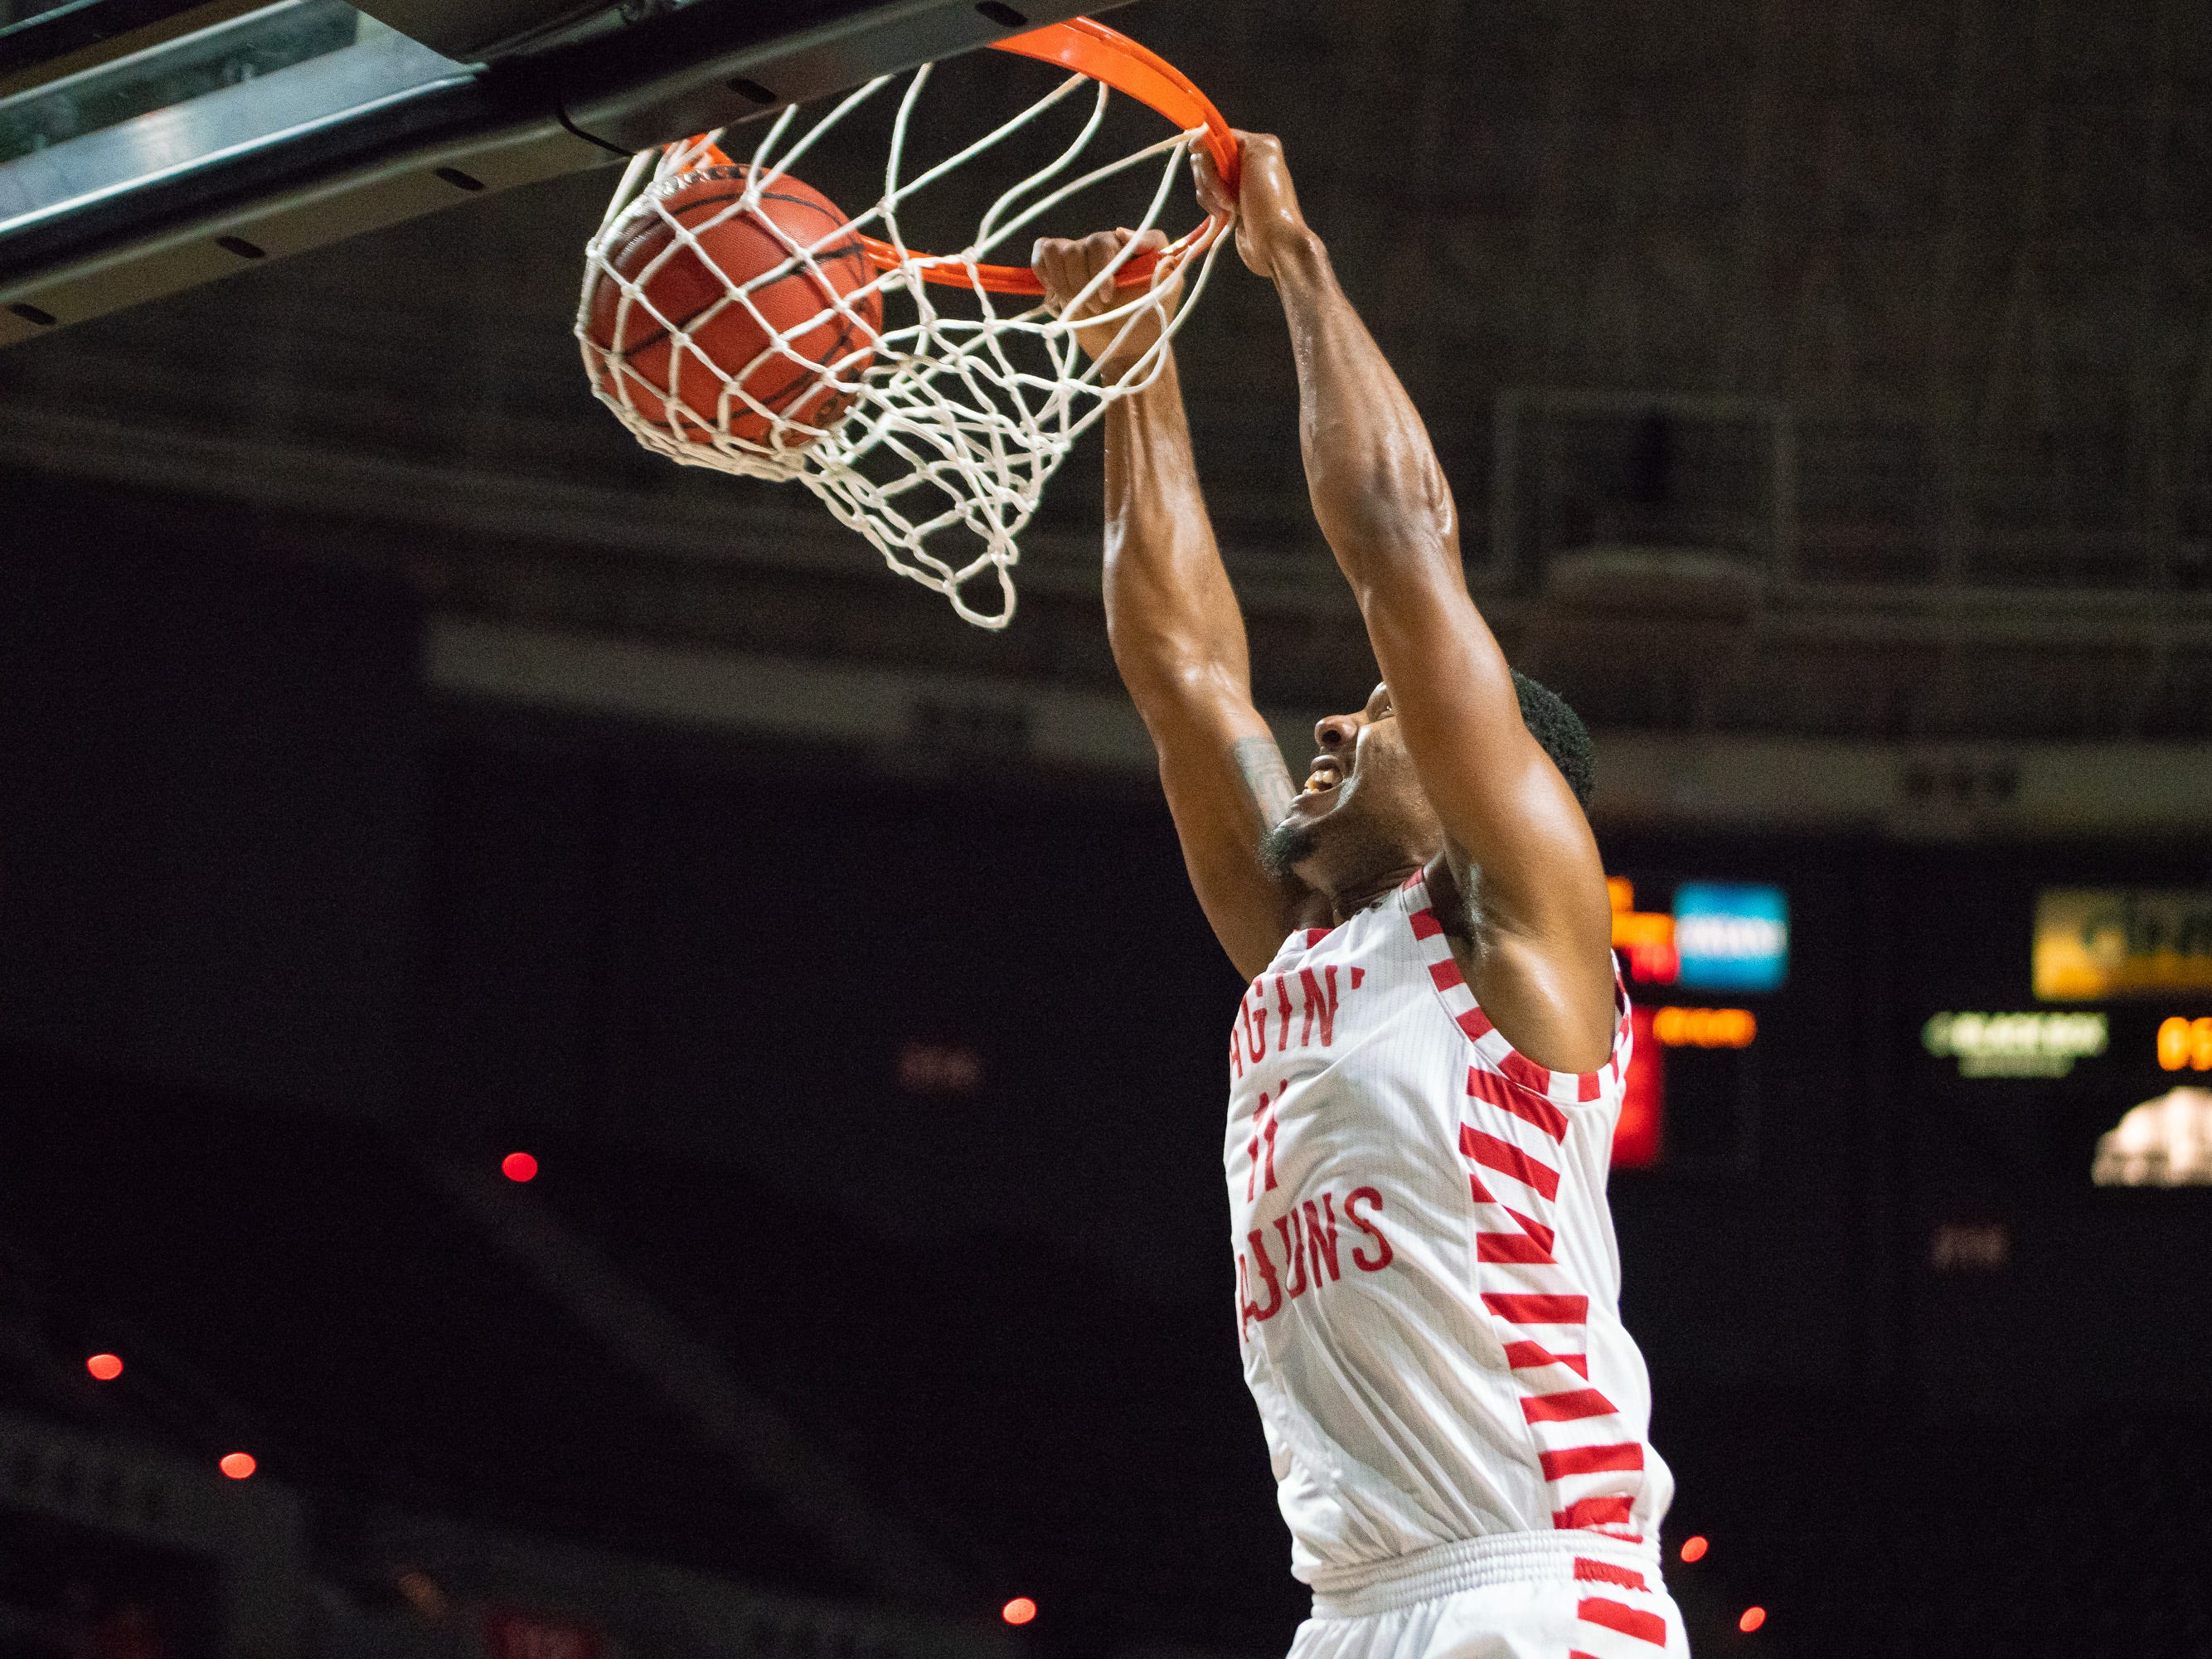 UL's Jerekius Davis leaps up to the goal for a dunk as the Ragin' Cajuns play against the Southern University Jaguars at the Cajundome on December 1, 2018.